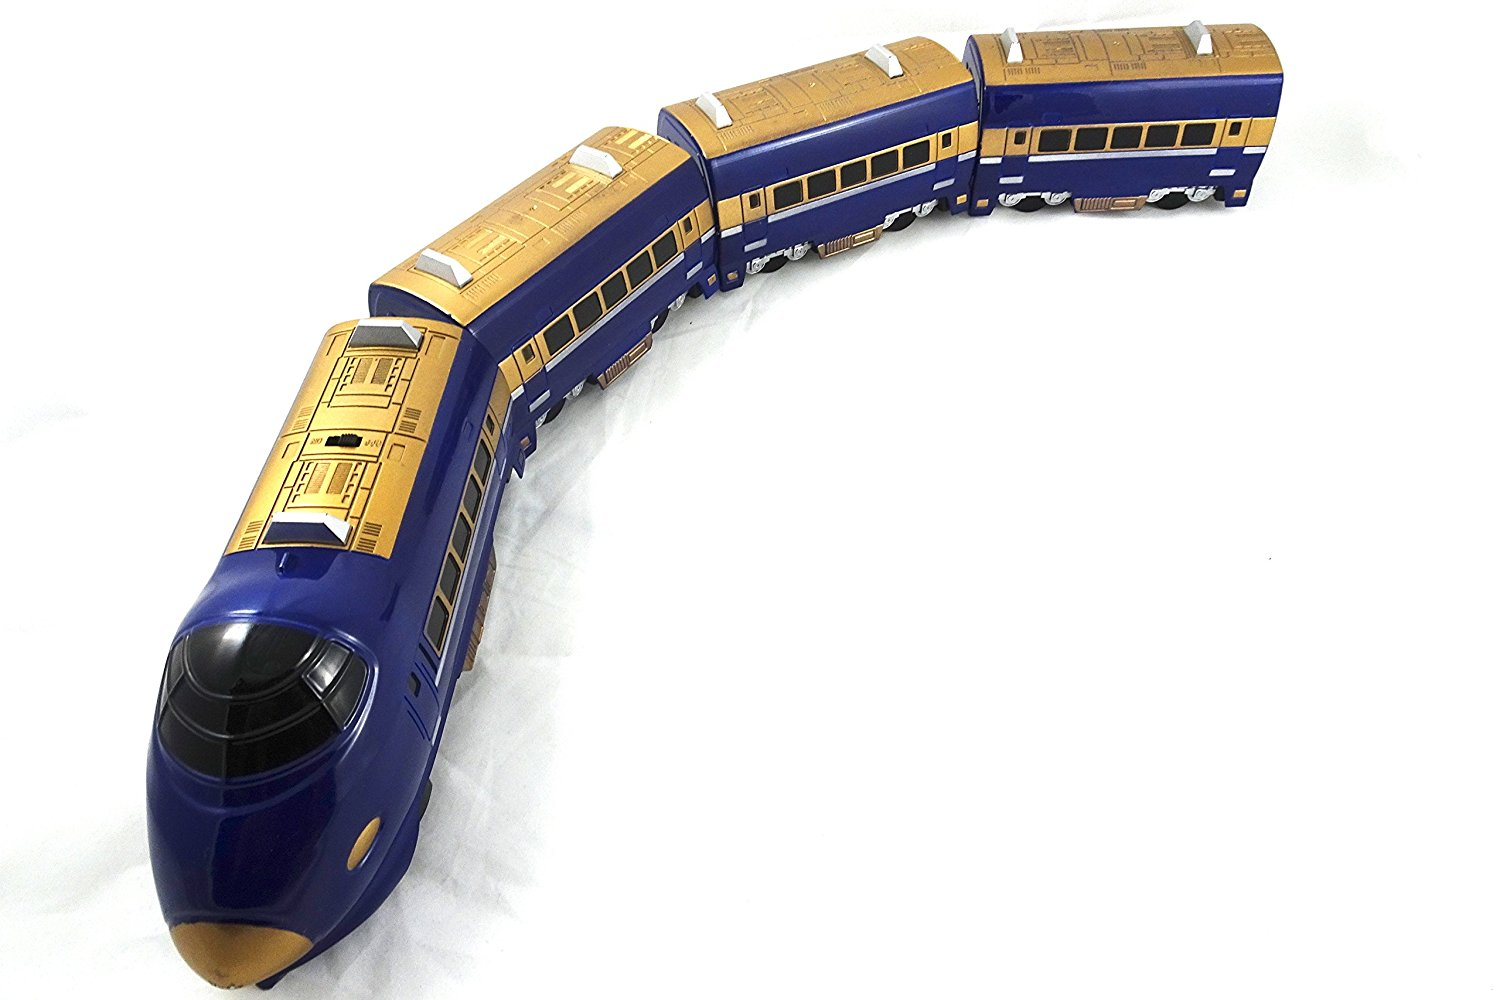 Toy Train Express Classical Toy Passenger Train Features Bump n Go Technology Battery Operated Fast Train With Sound